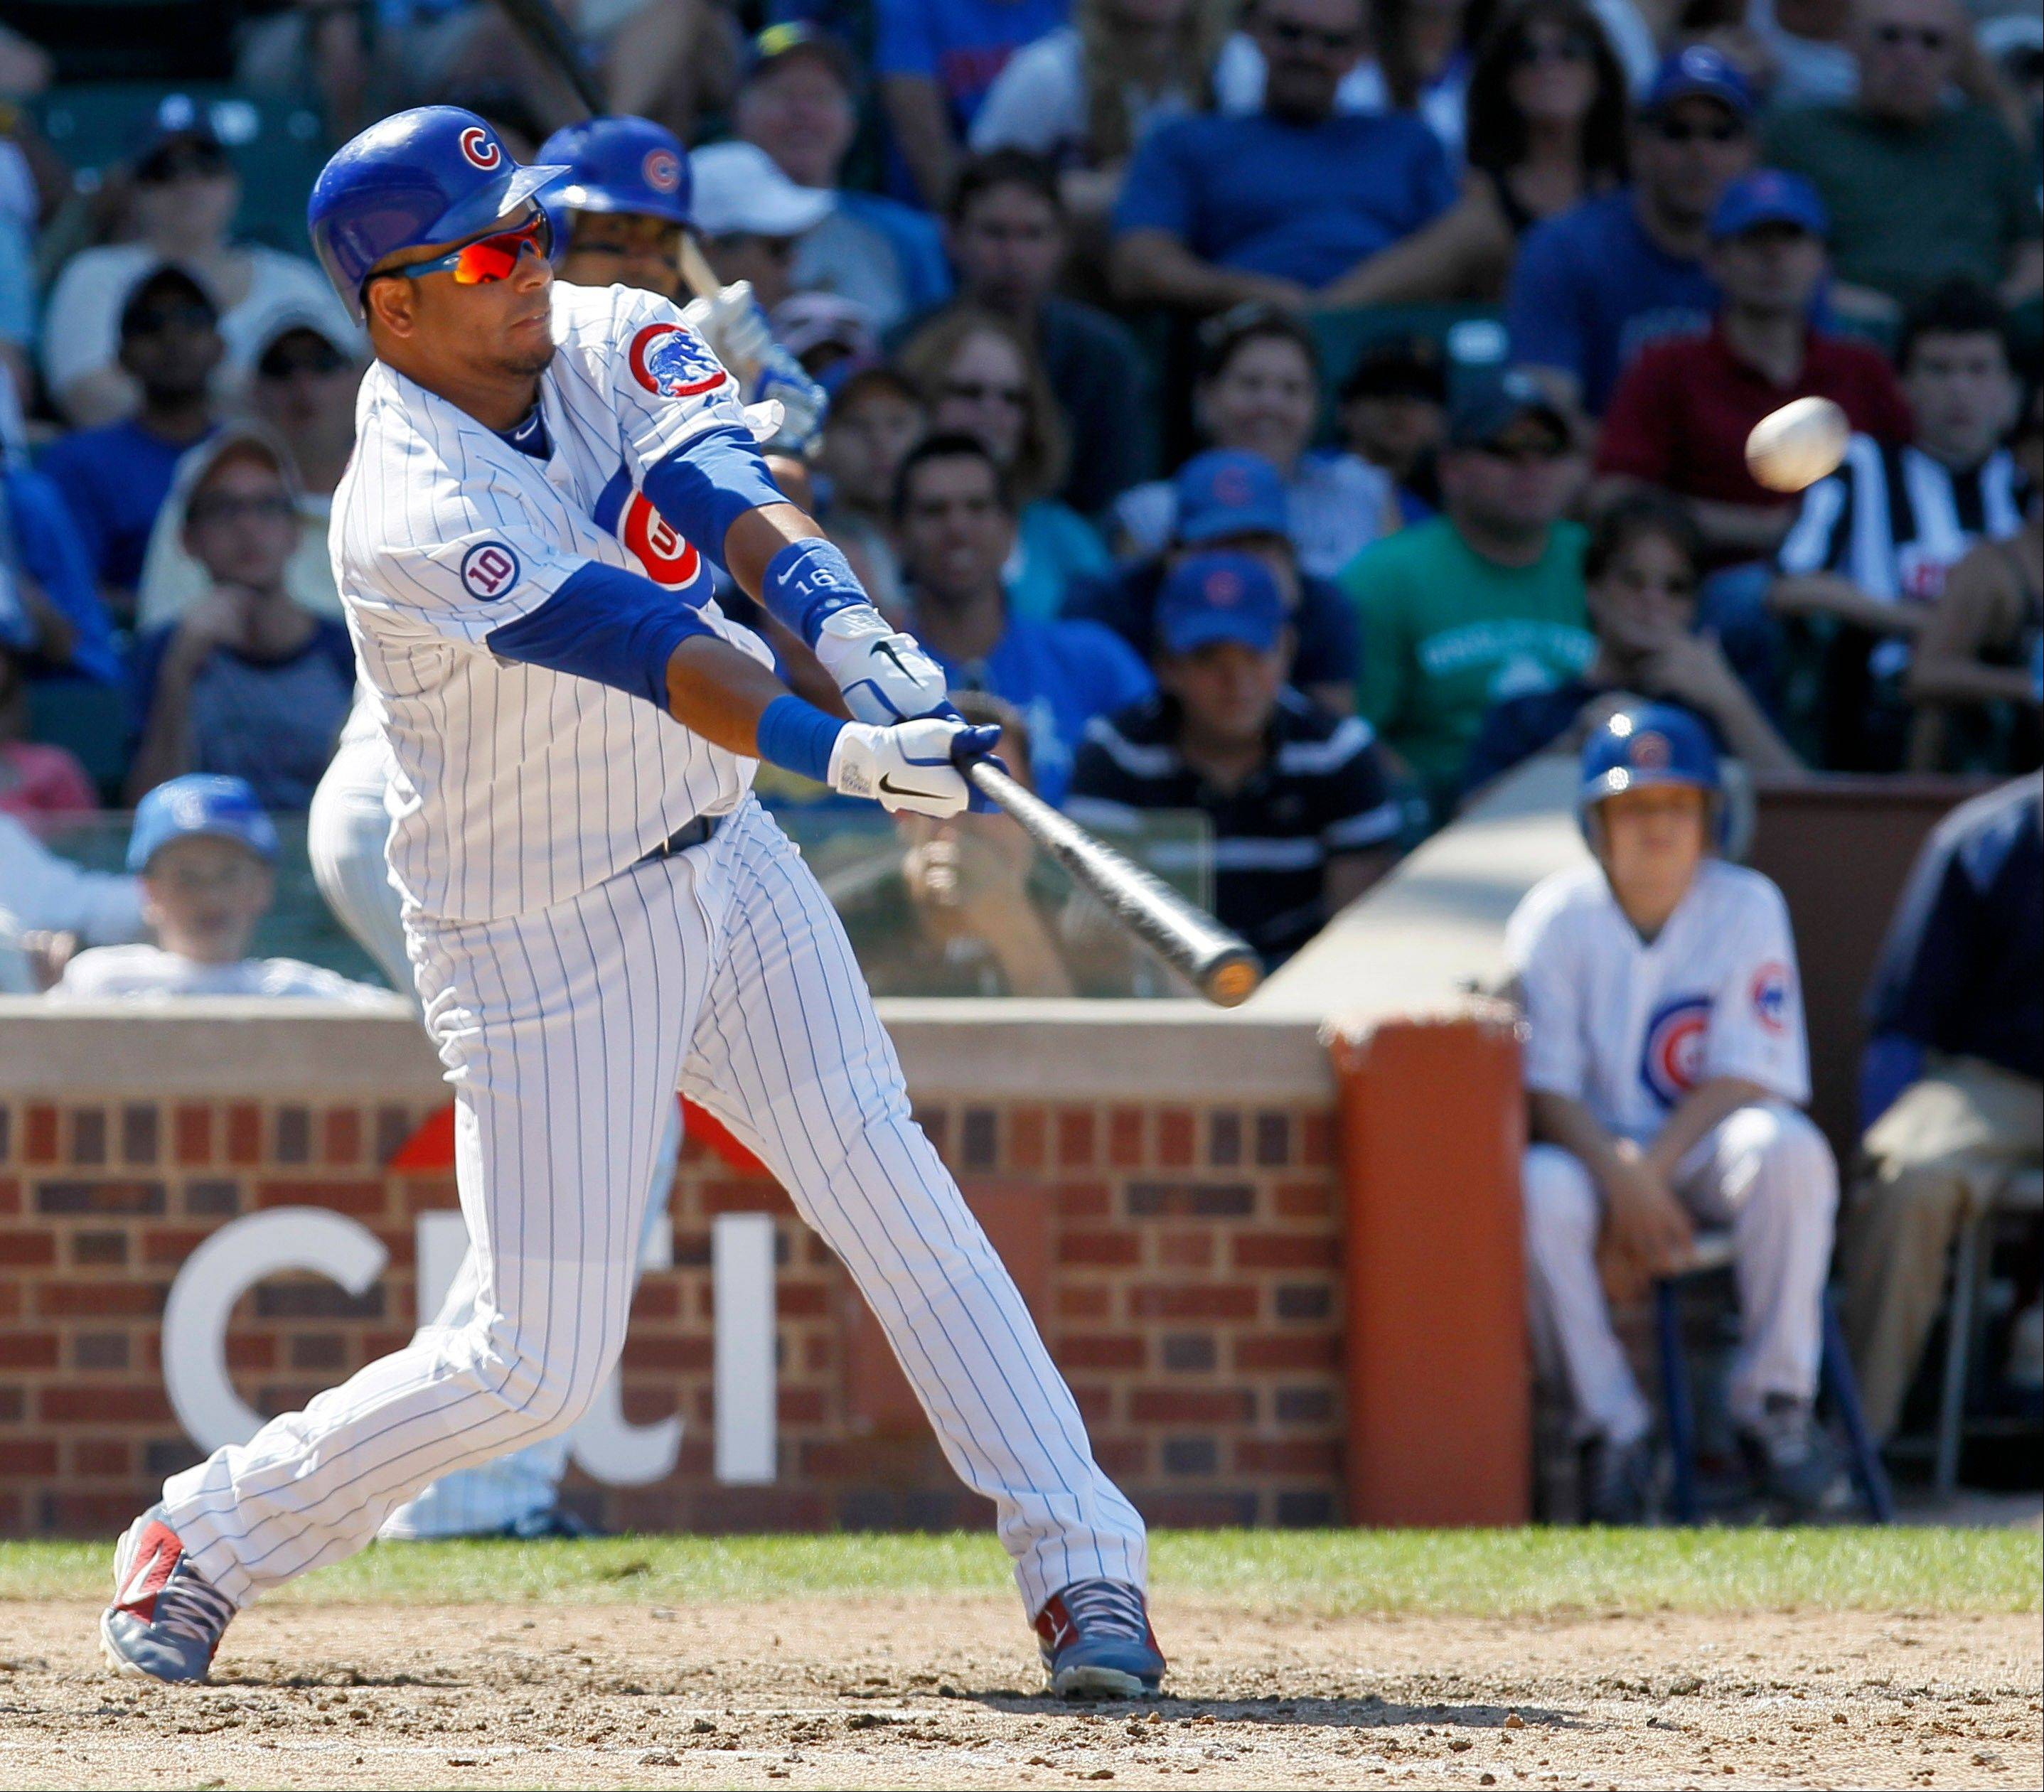 Young Cubs hitters could be more selective